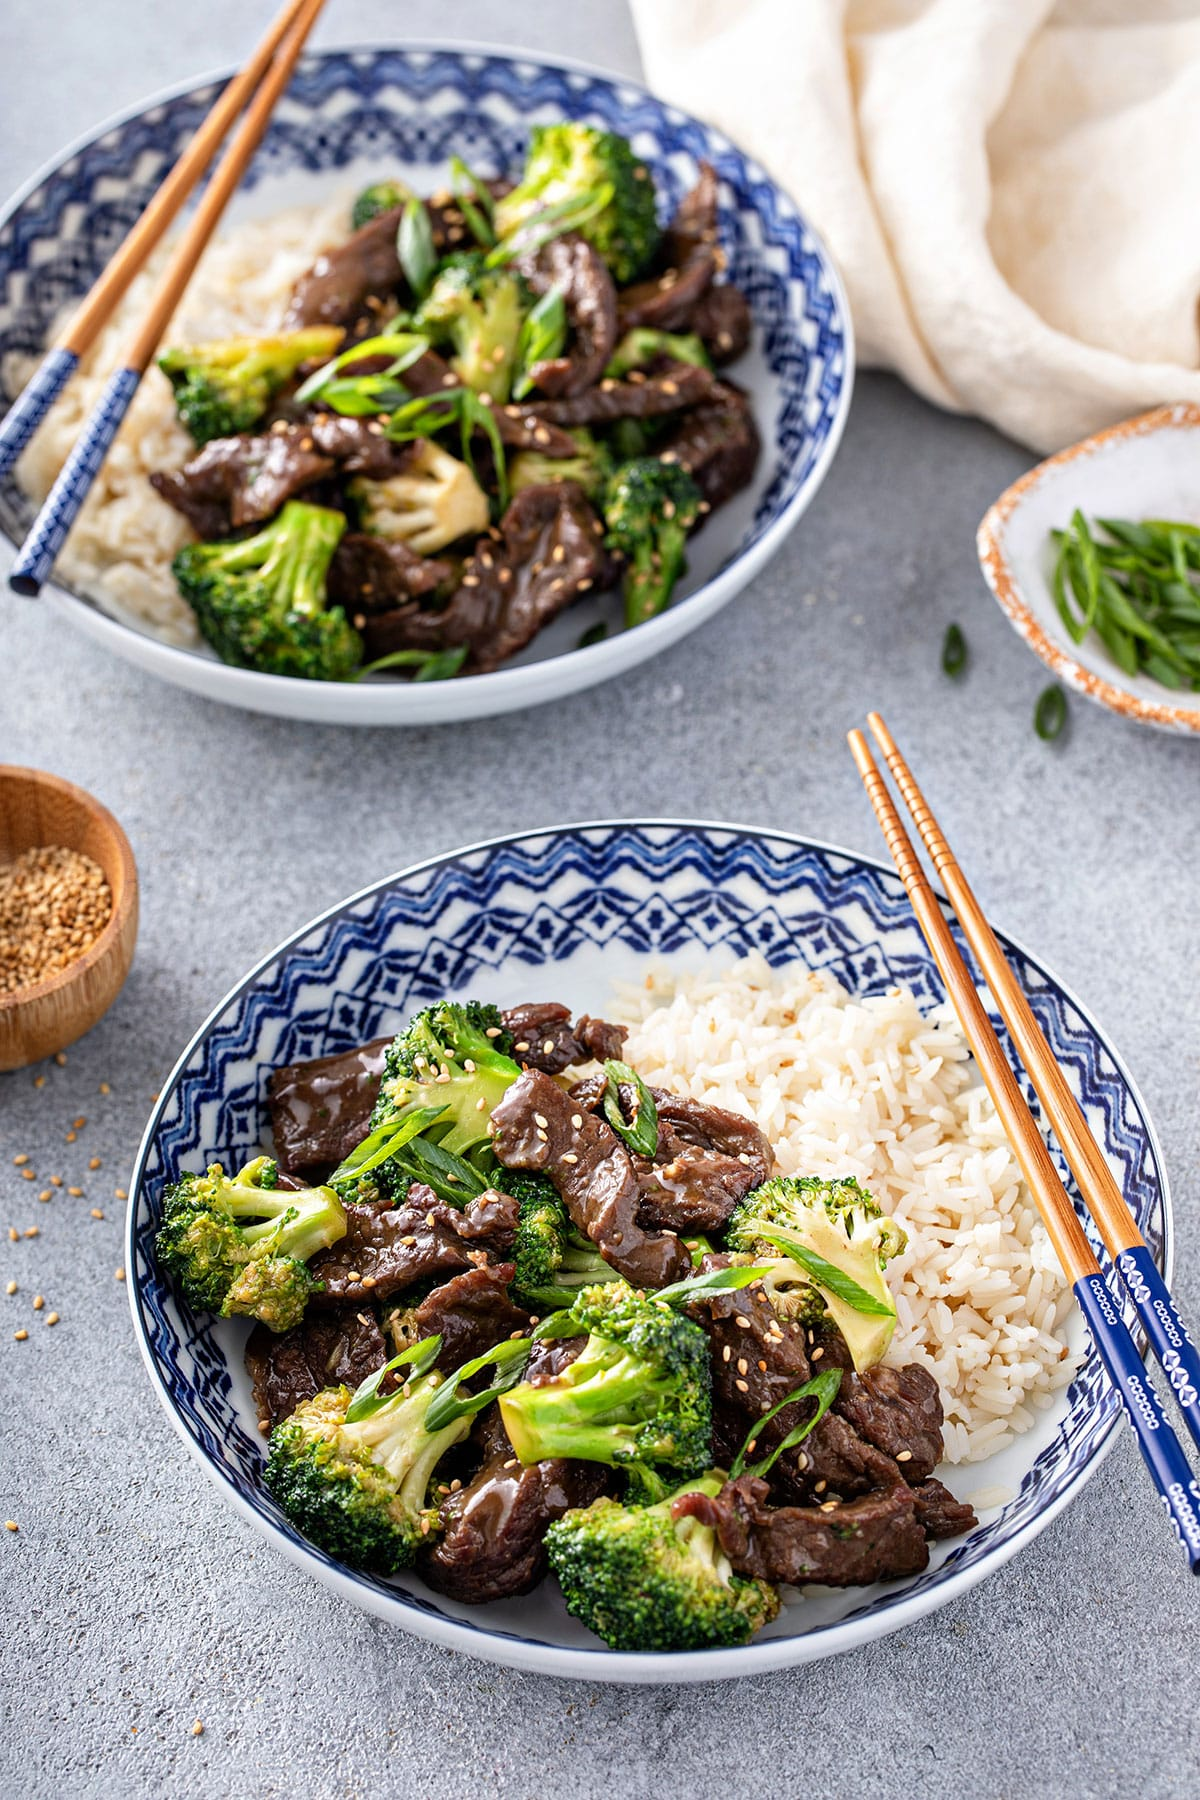 Chopsticks starting to lift broccoli beef from a white bowl.